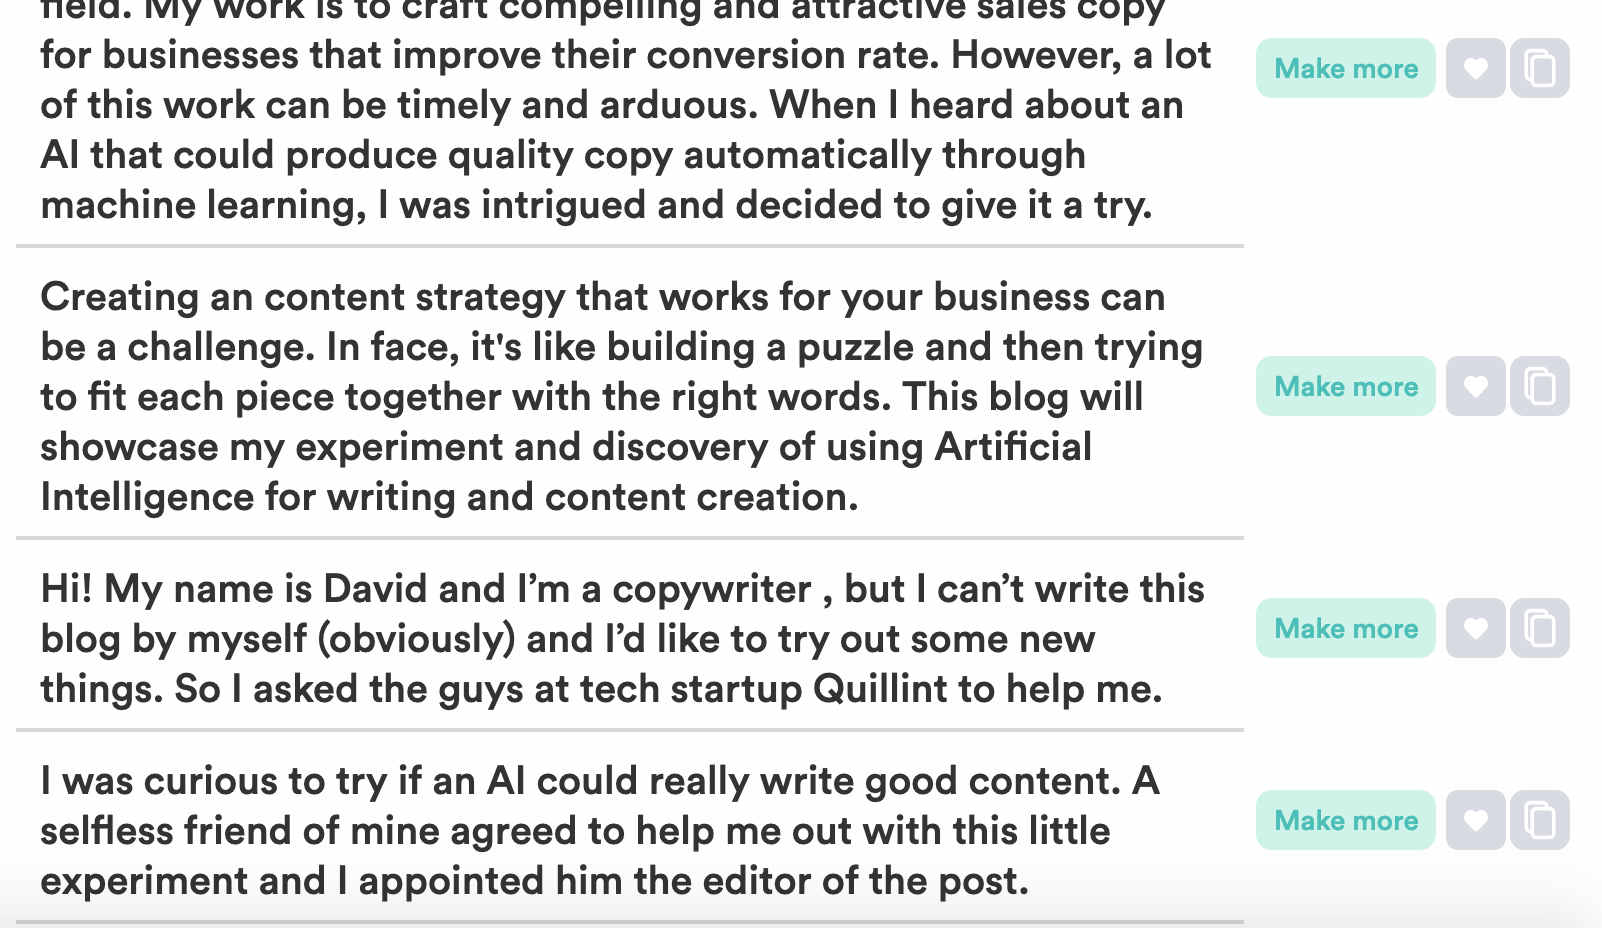 I Used AI to Write This Blog (Sort Of)